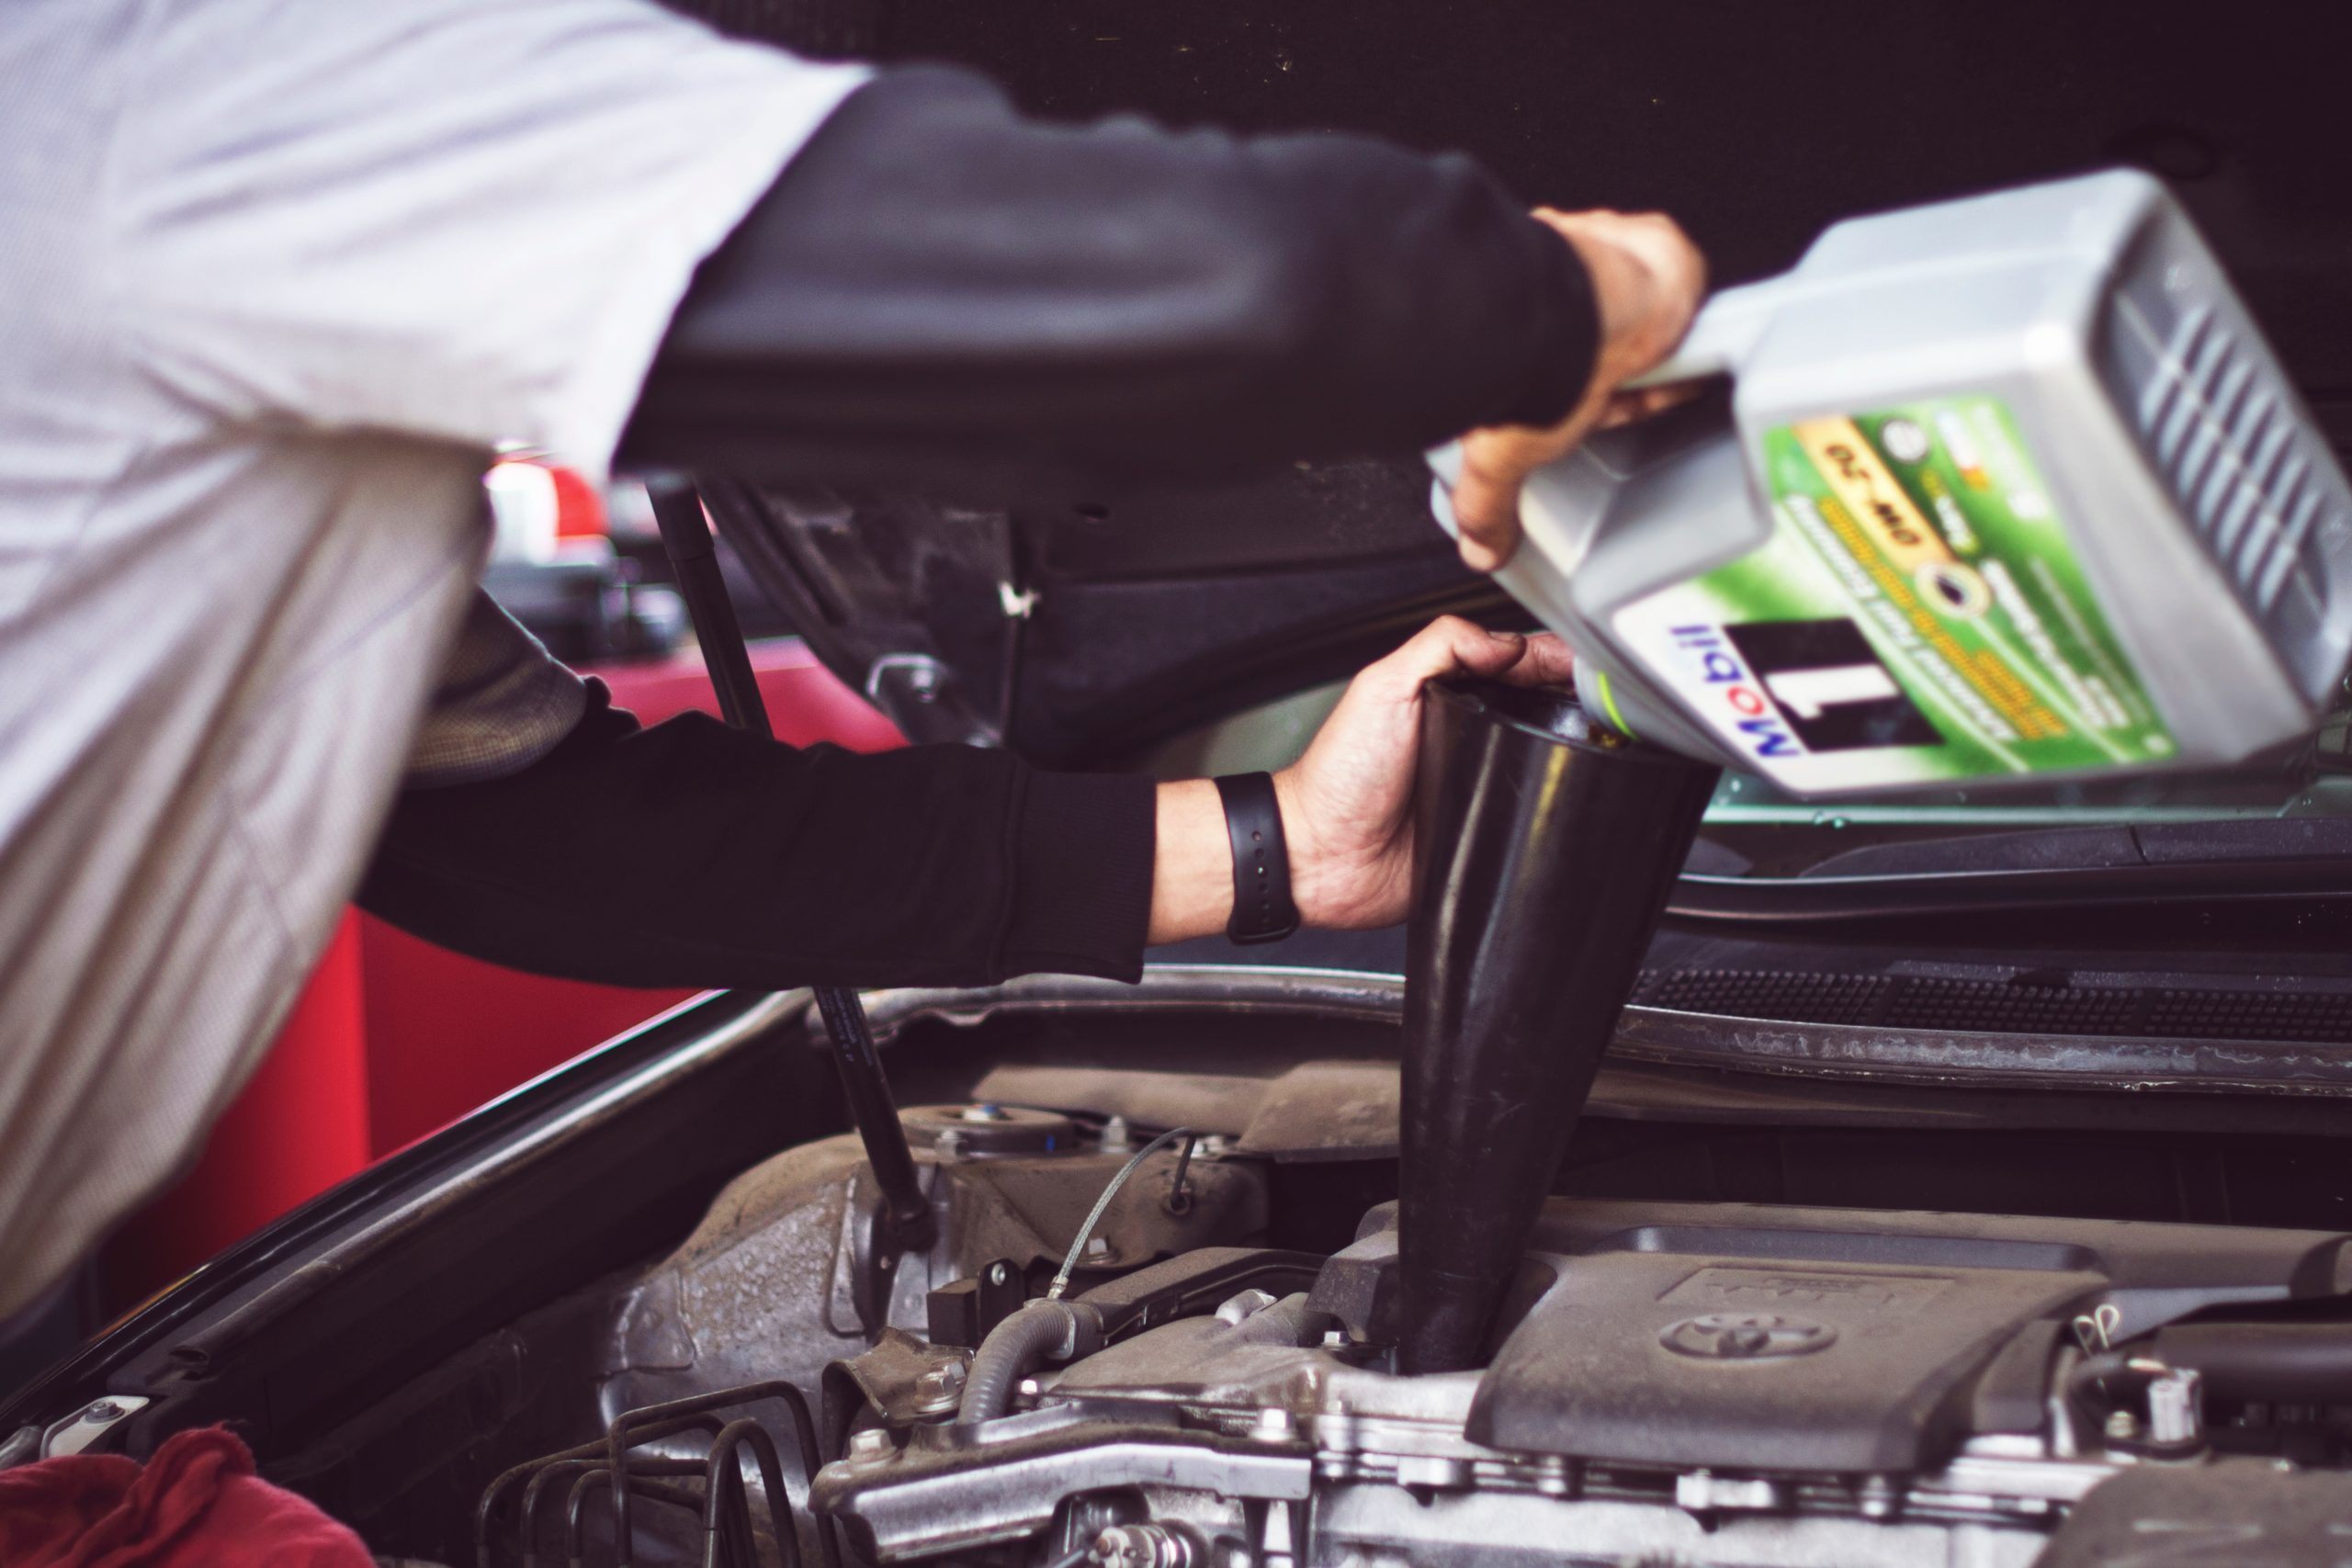 What You Should Know About Oil Types Before Your Next Oil Change